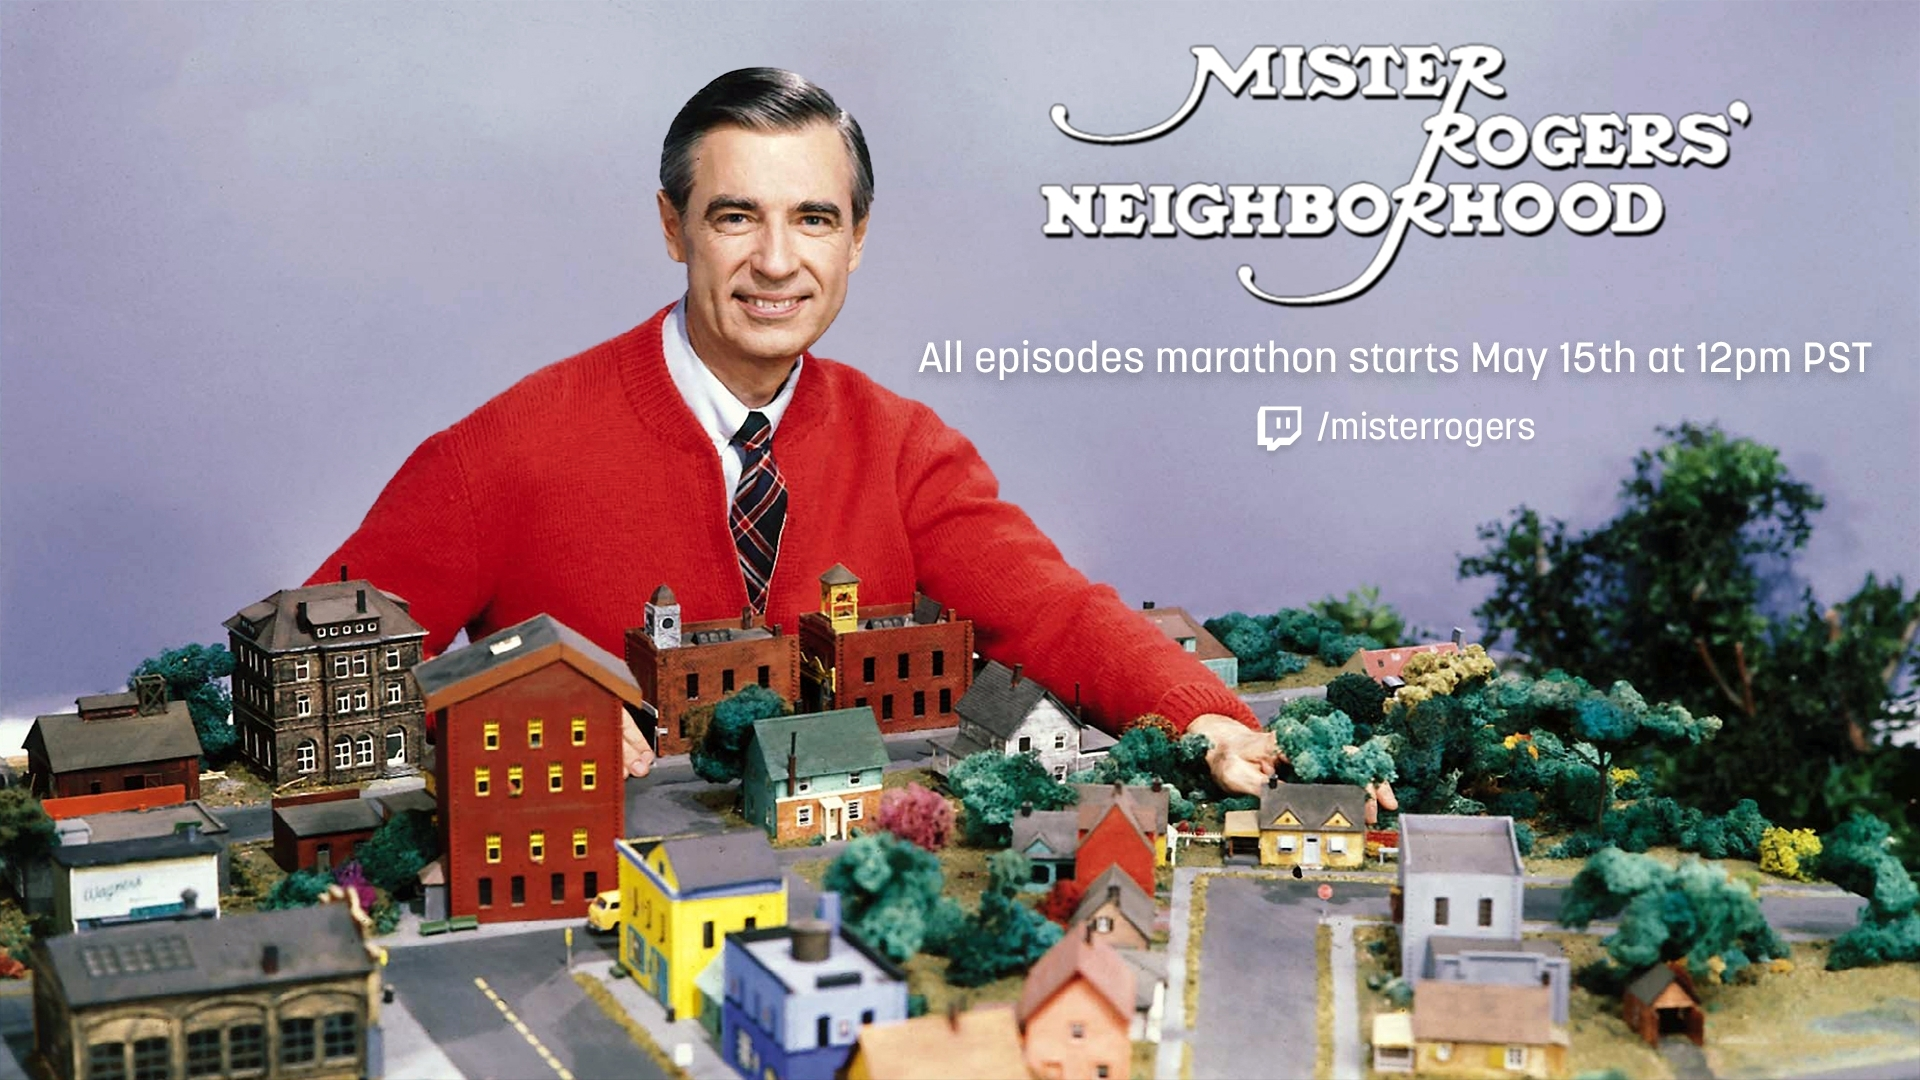 It S A Wonderful Month In The Neighborhood Twitch Announces Marathon Of Pbs Kids Iconic Series Mister Rogers Neighborhood Business Wire